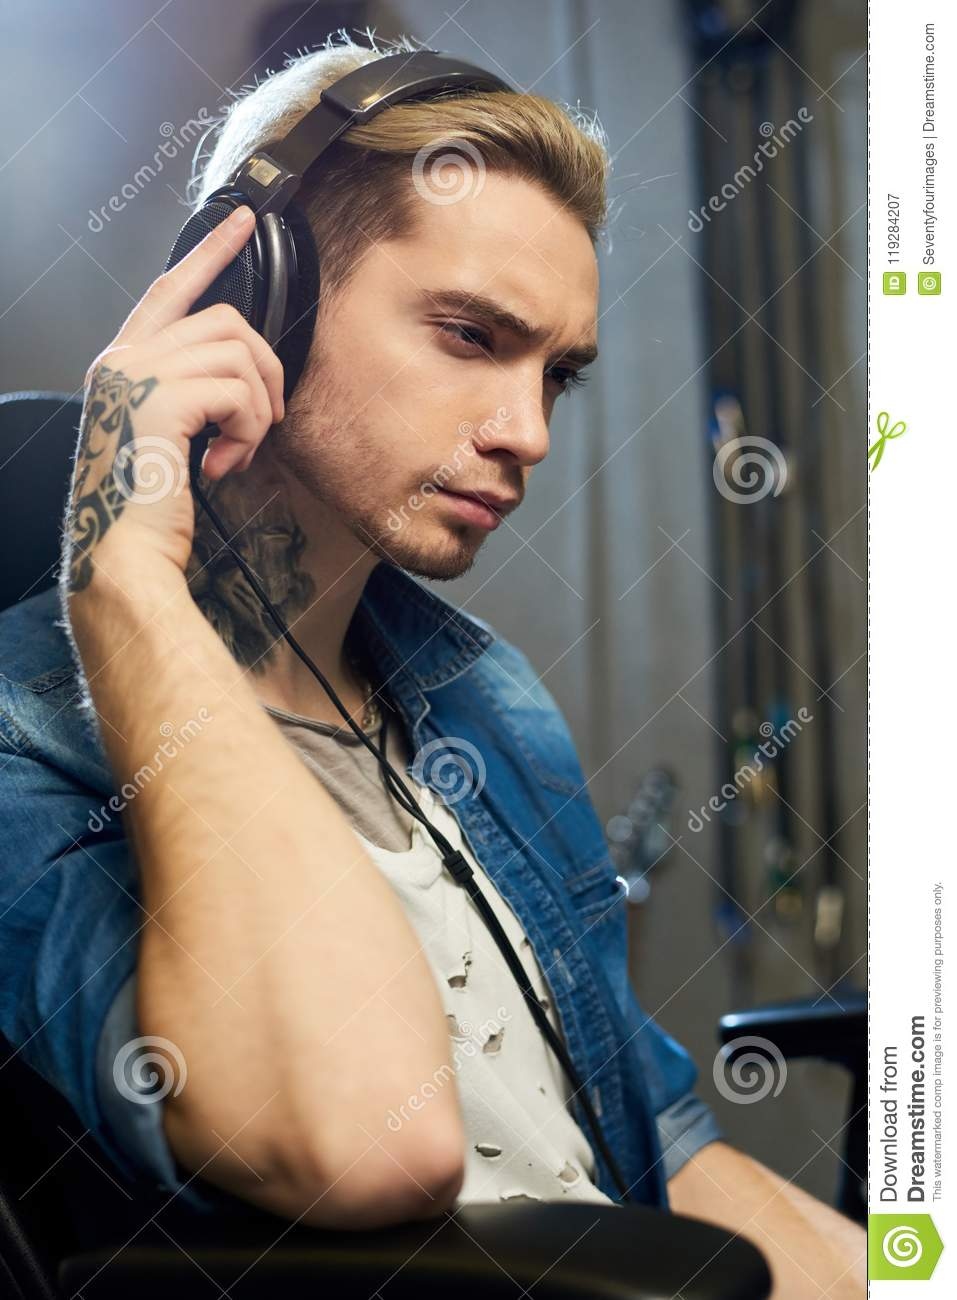 Stylish composer listening to music in studio